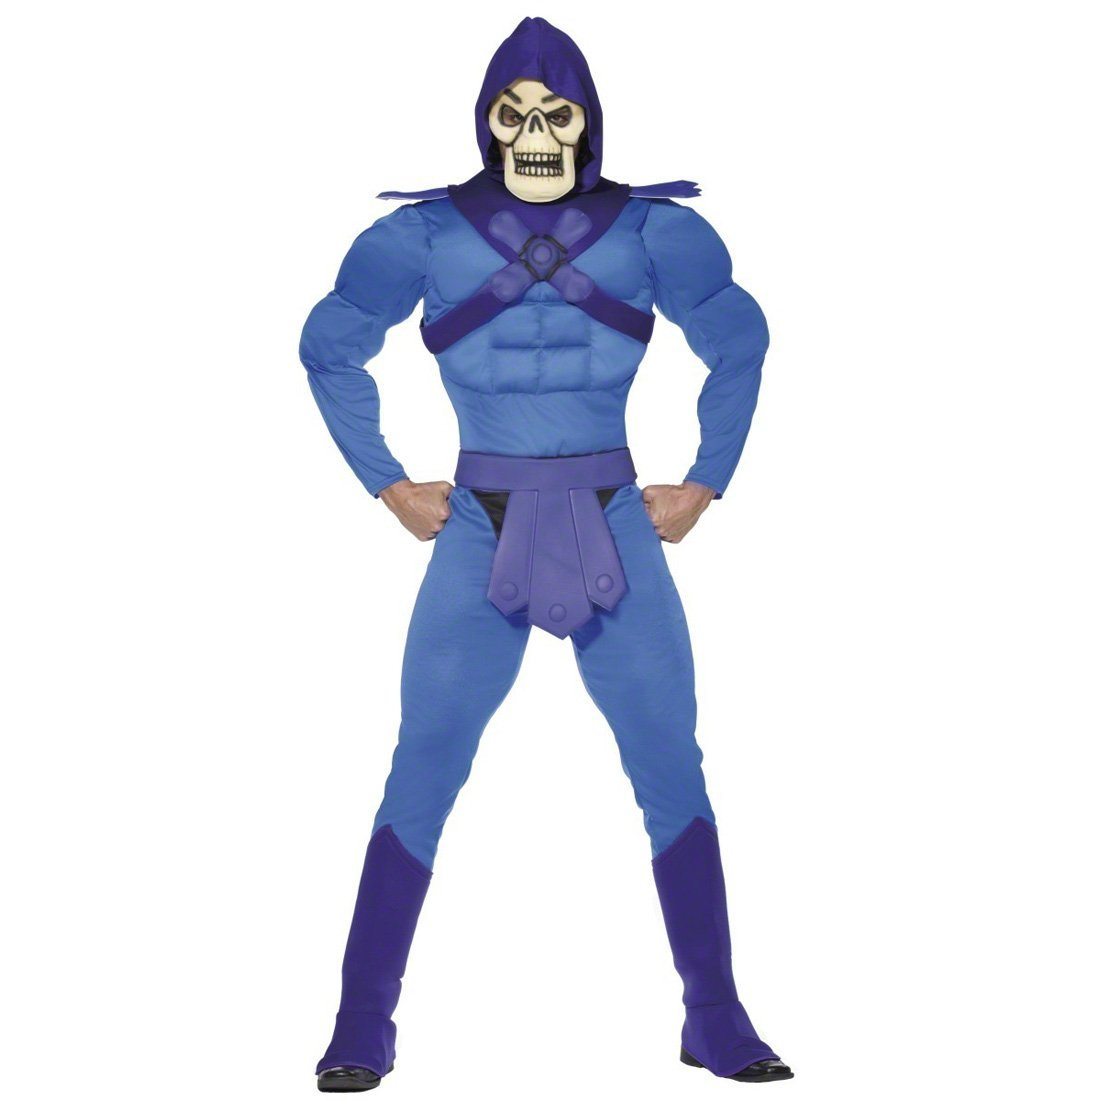 Halloween Kostüm Kostüm Kostüm Skeletor He Man M 48/50 cd1337